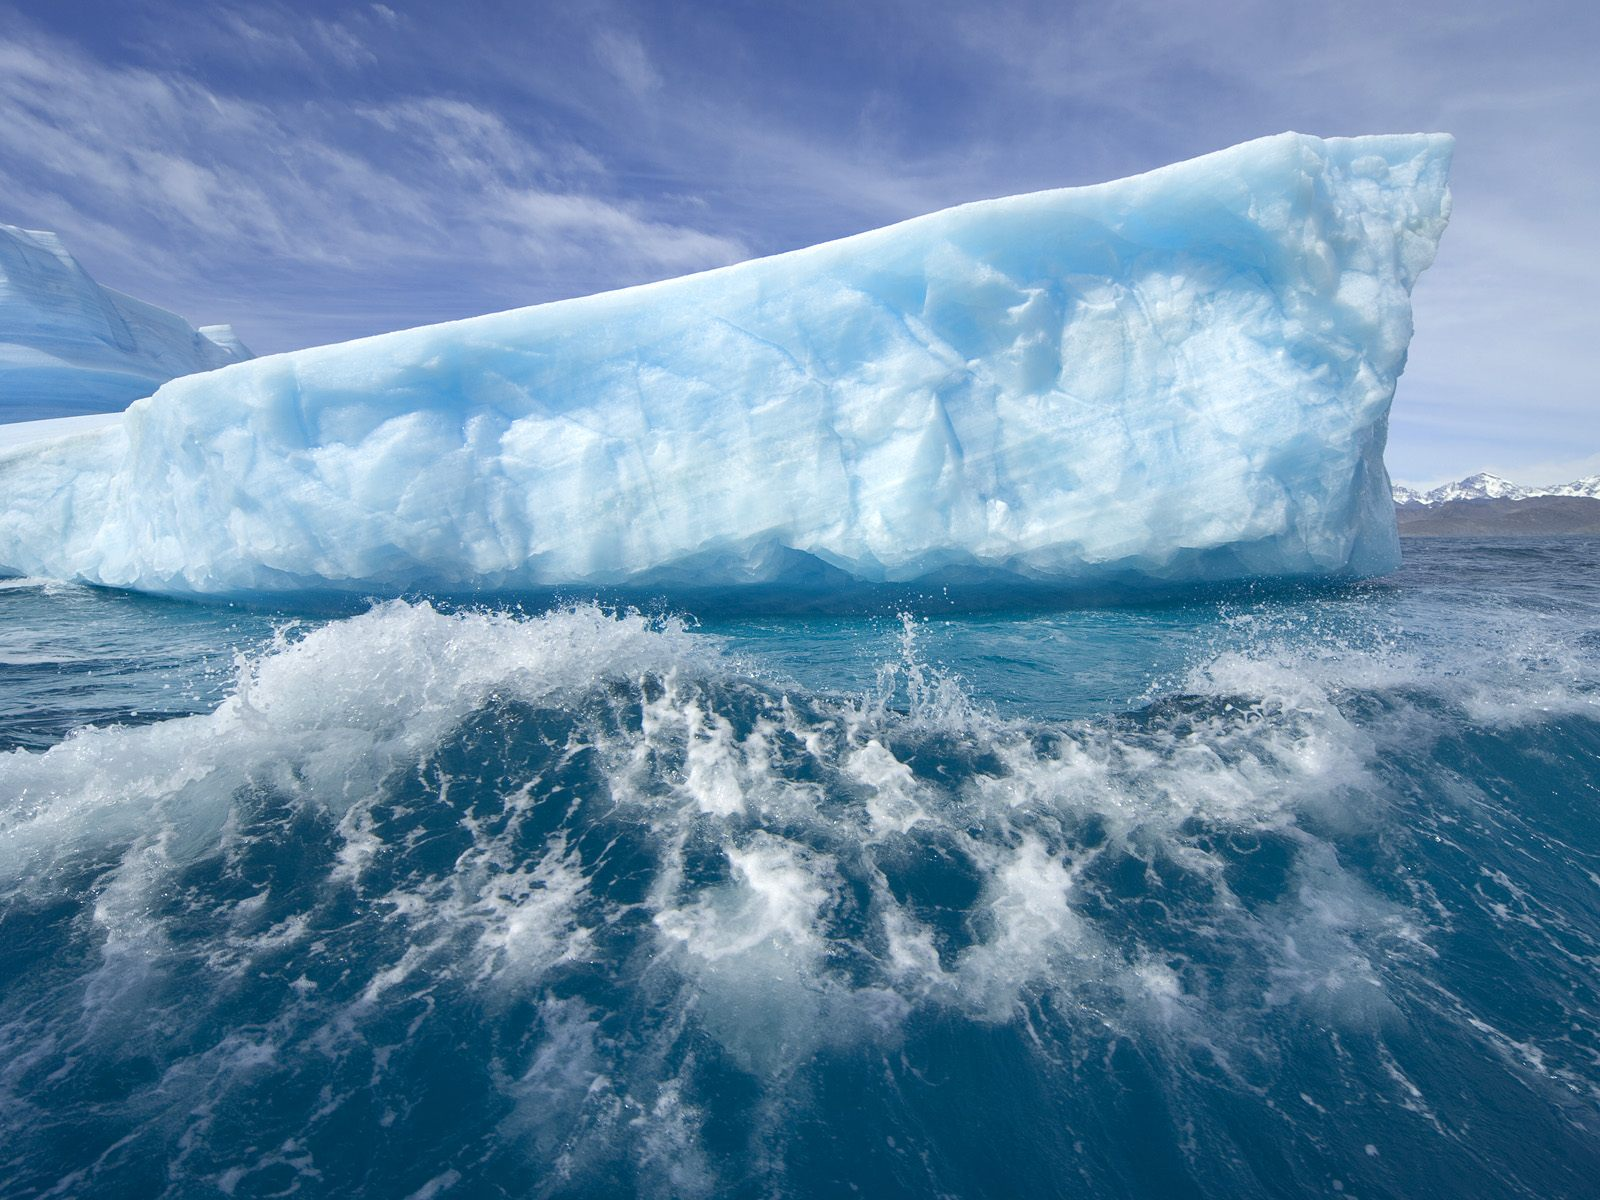 iceberg wallpaper ocean